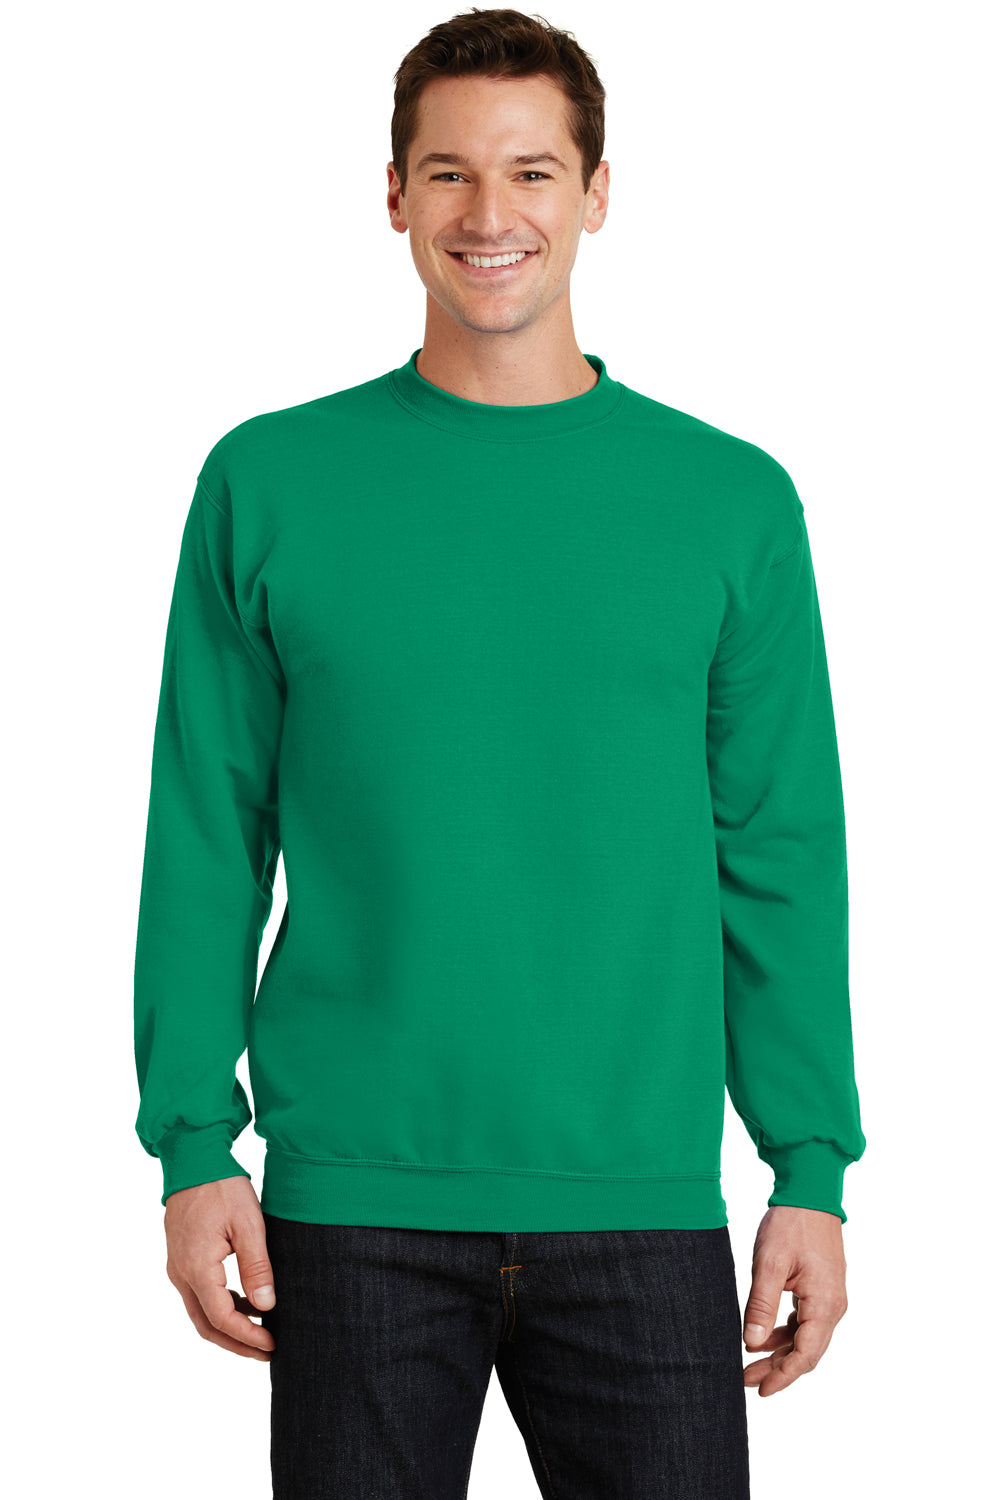 Port & Company PC78 Mens Core Fleece Crewneck Sweatshirt Kelly Green Front